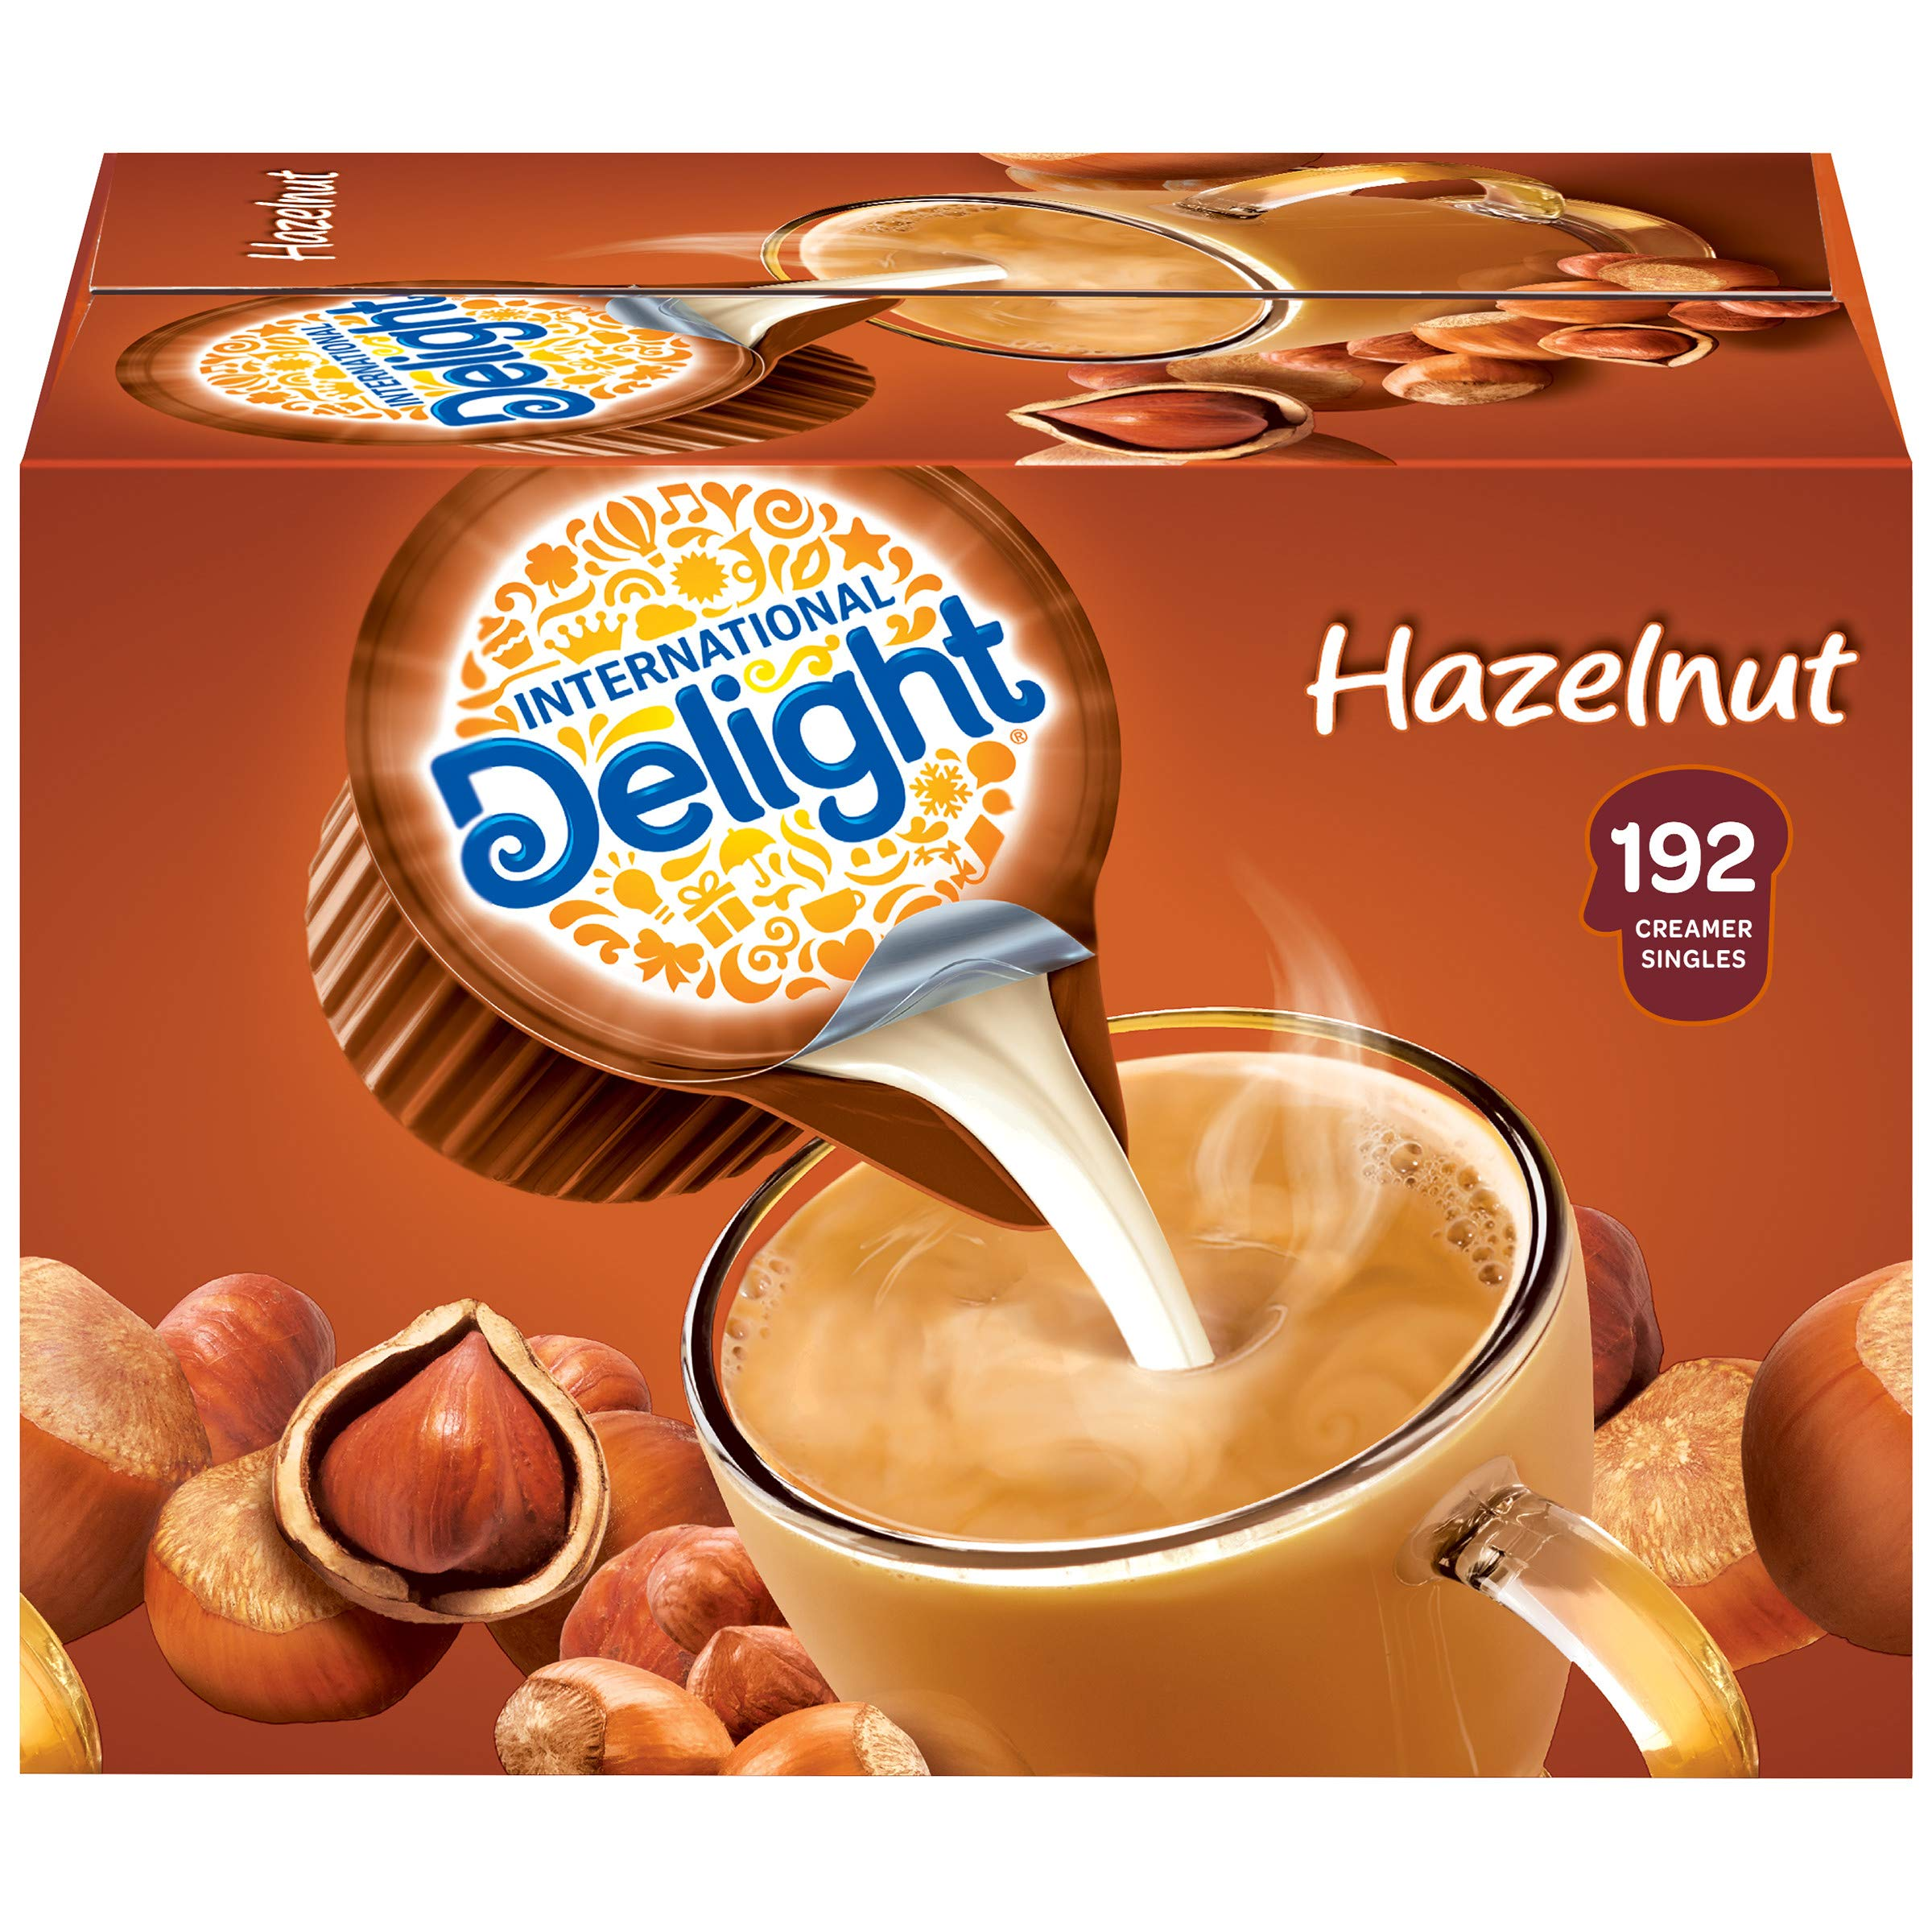 International Delight, SingleServe Coffee Creamers Pack of 1 Shelf Stable NonDairy Flavored Coffee Creamer Great for Home Use Offices Parties or Group Events, Hazelnut, 192 Count, (Pack of 192)